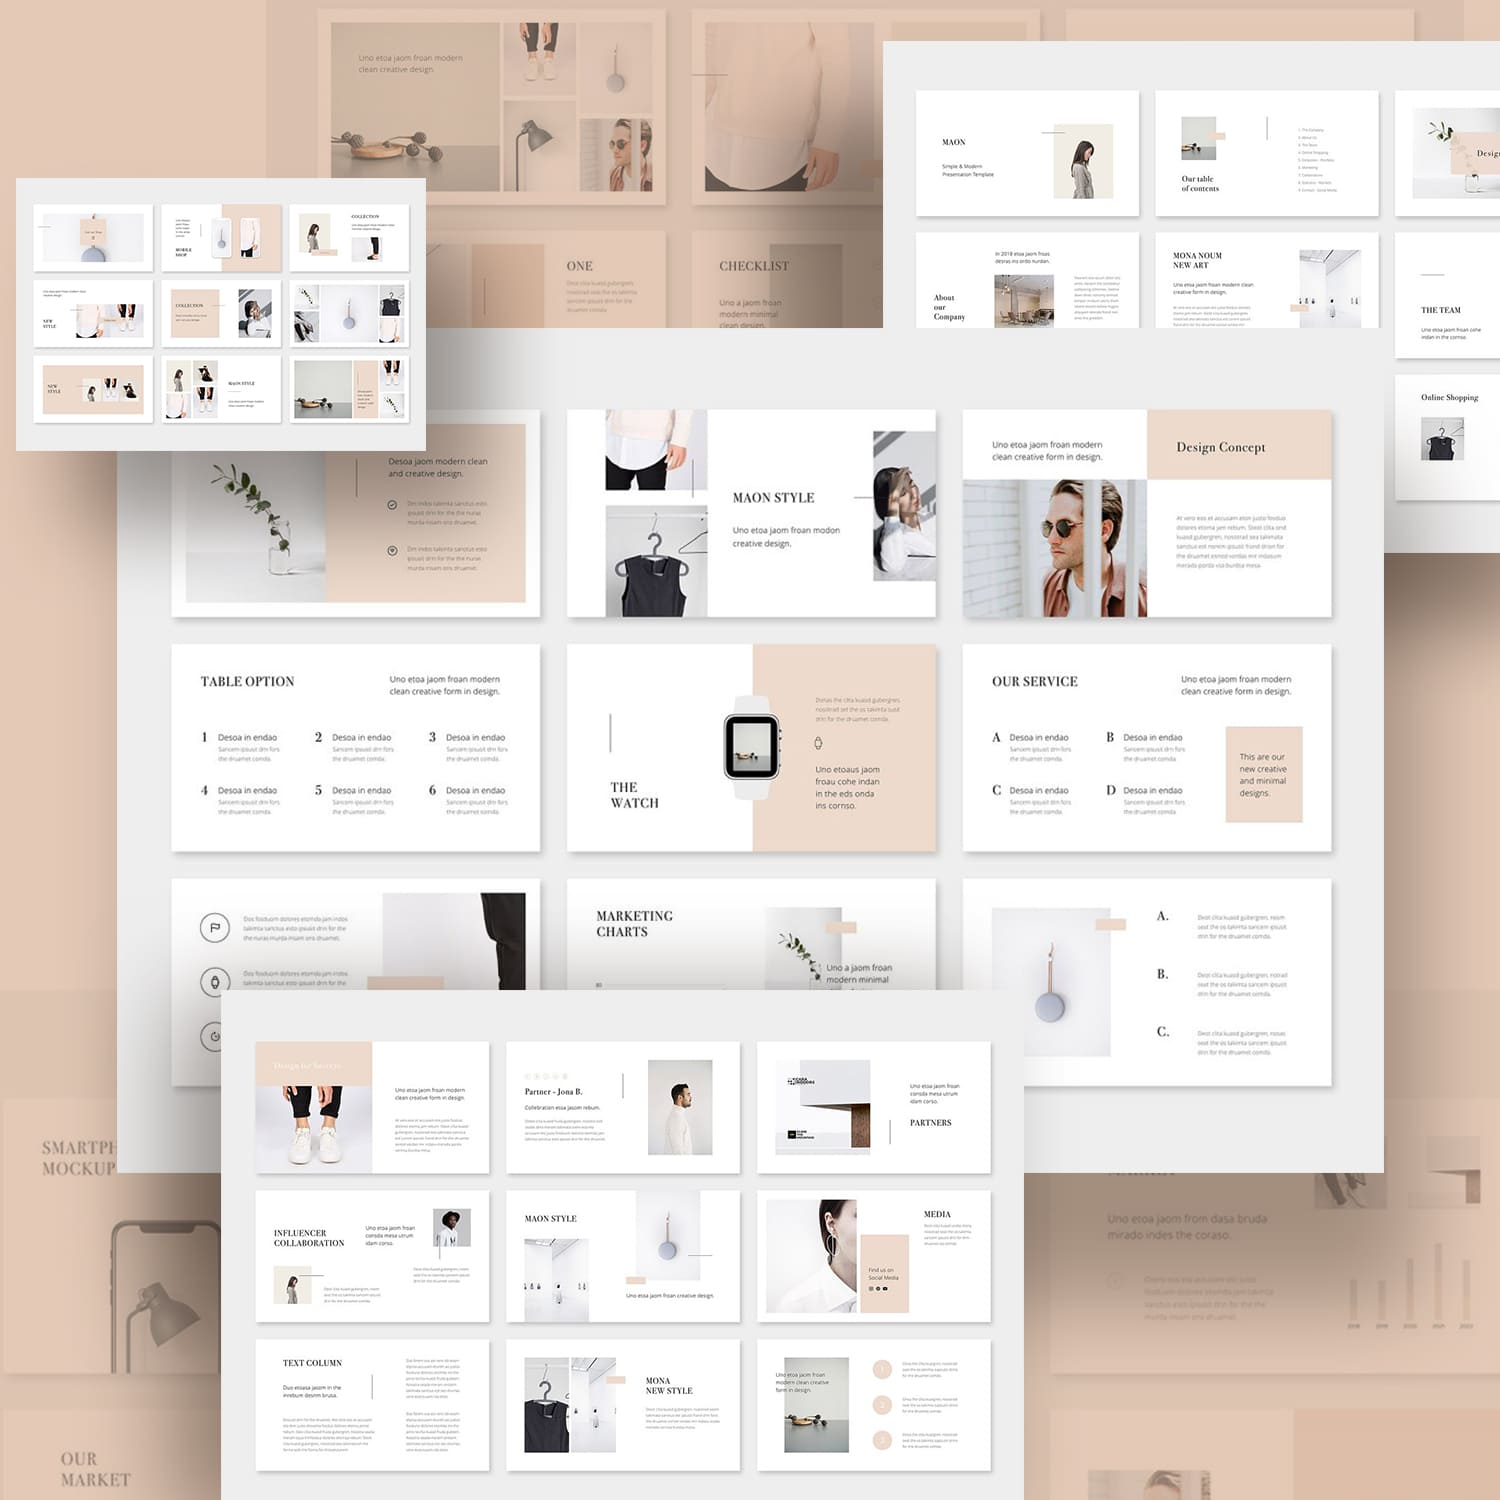 MAON - Powerpoint Template.